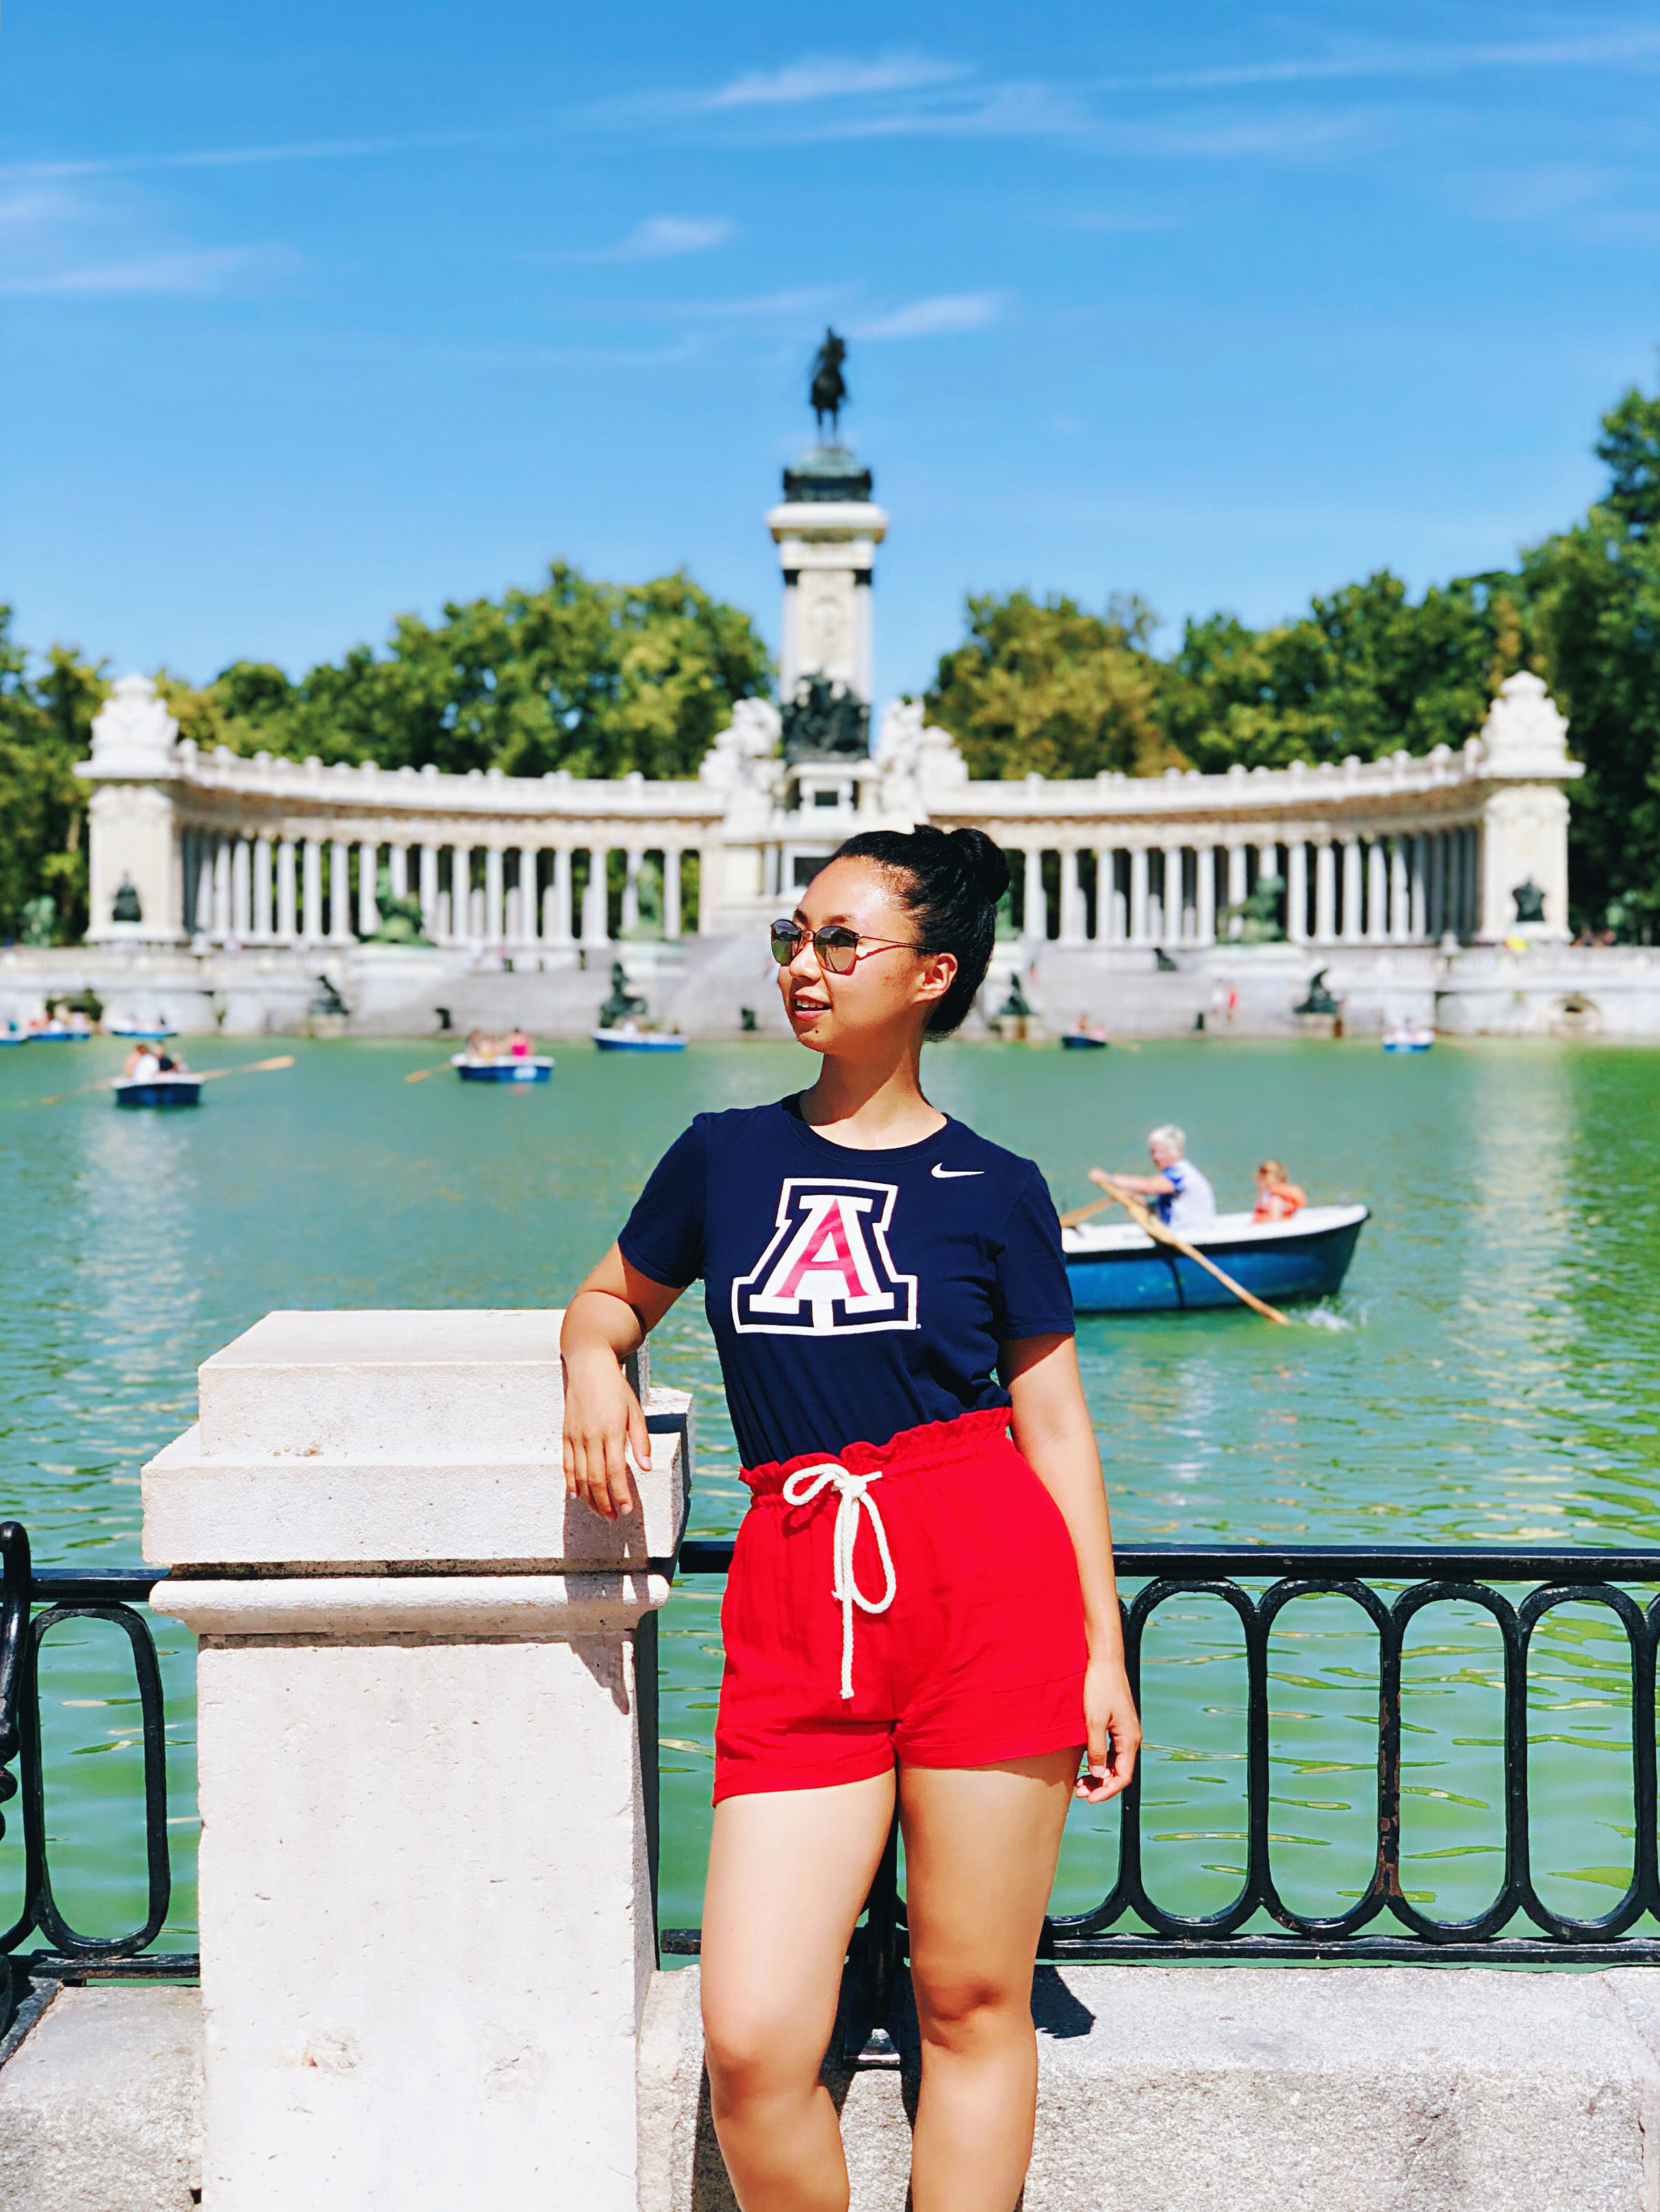 Mandy Han, studying abroad in Madrid, Spain, wearing UArizona shirt and colors, fountain in background